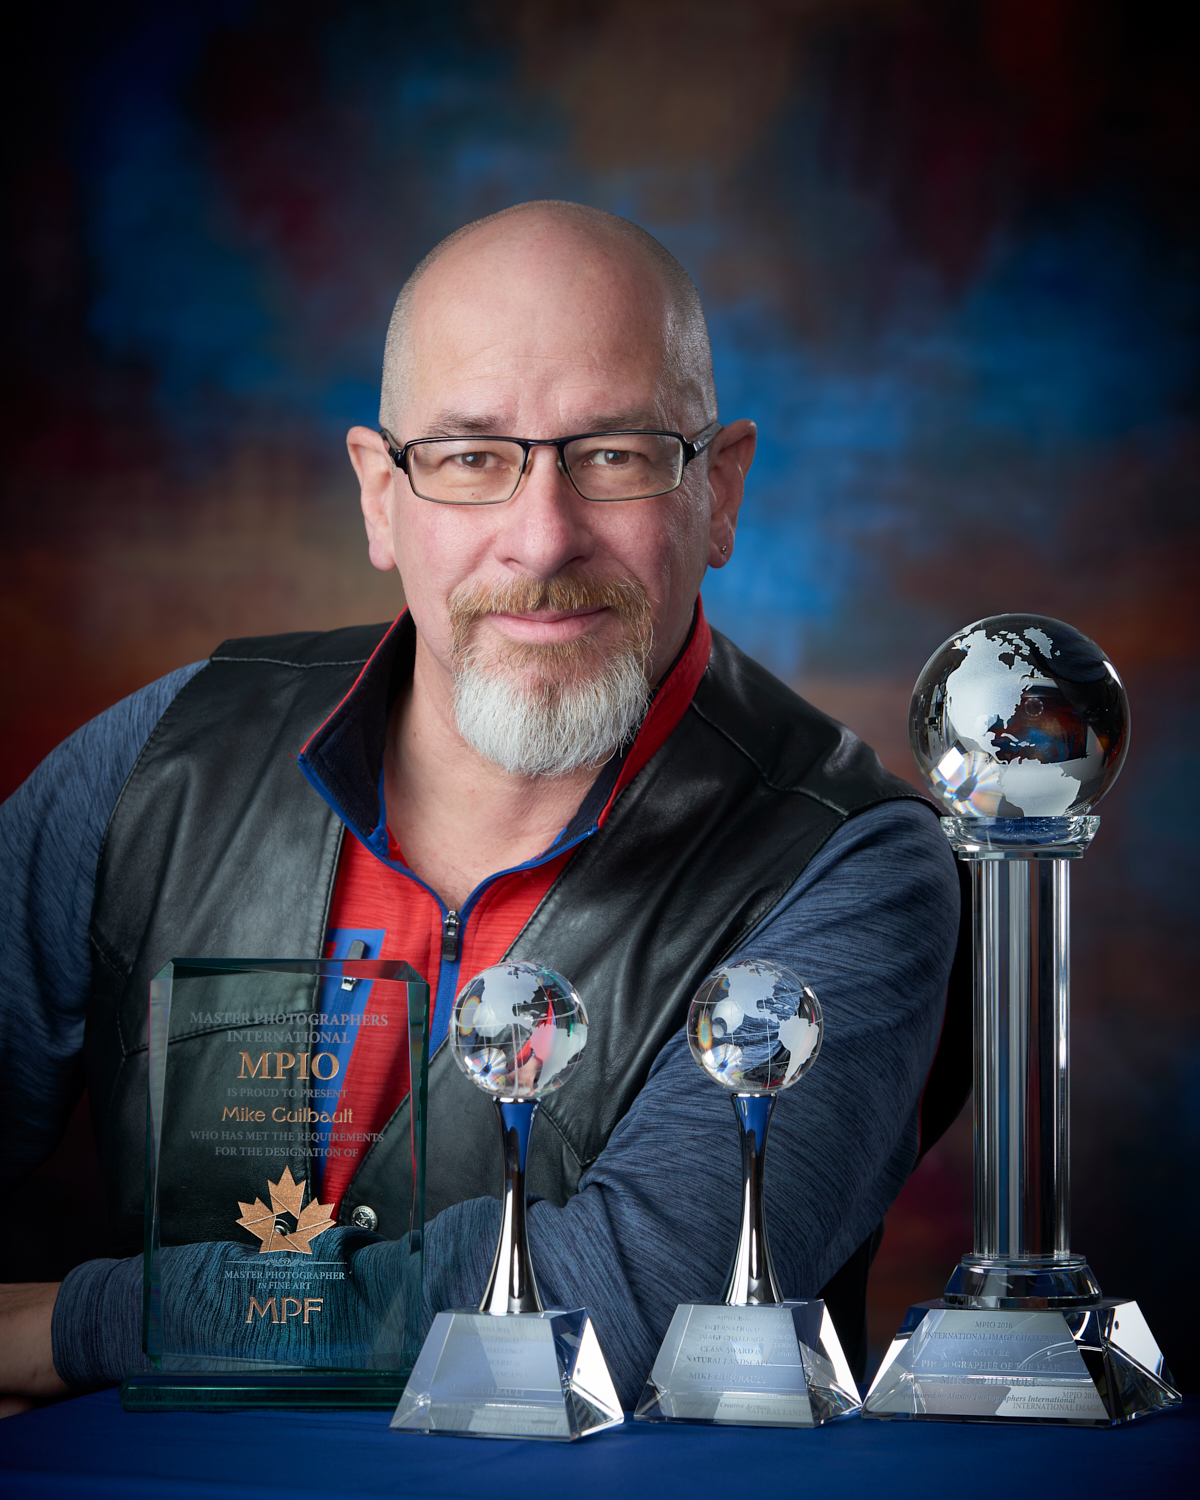 Mike Guilbault shown with (from left to right) the Master Photographer in Fine Art Award, the Best in Class (Seascape), Best in Class (Landscape) and the 2016 Nature Photographer of the Year awards from MPIO.